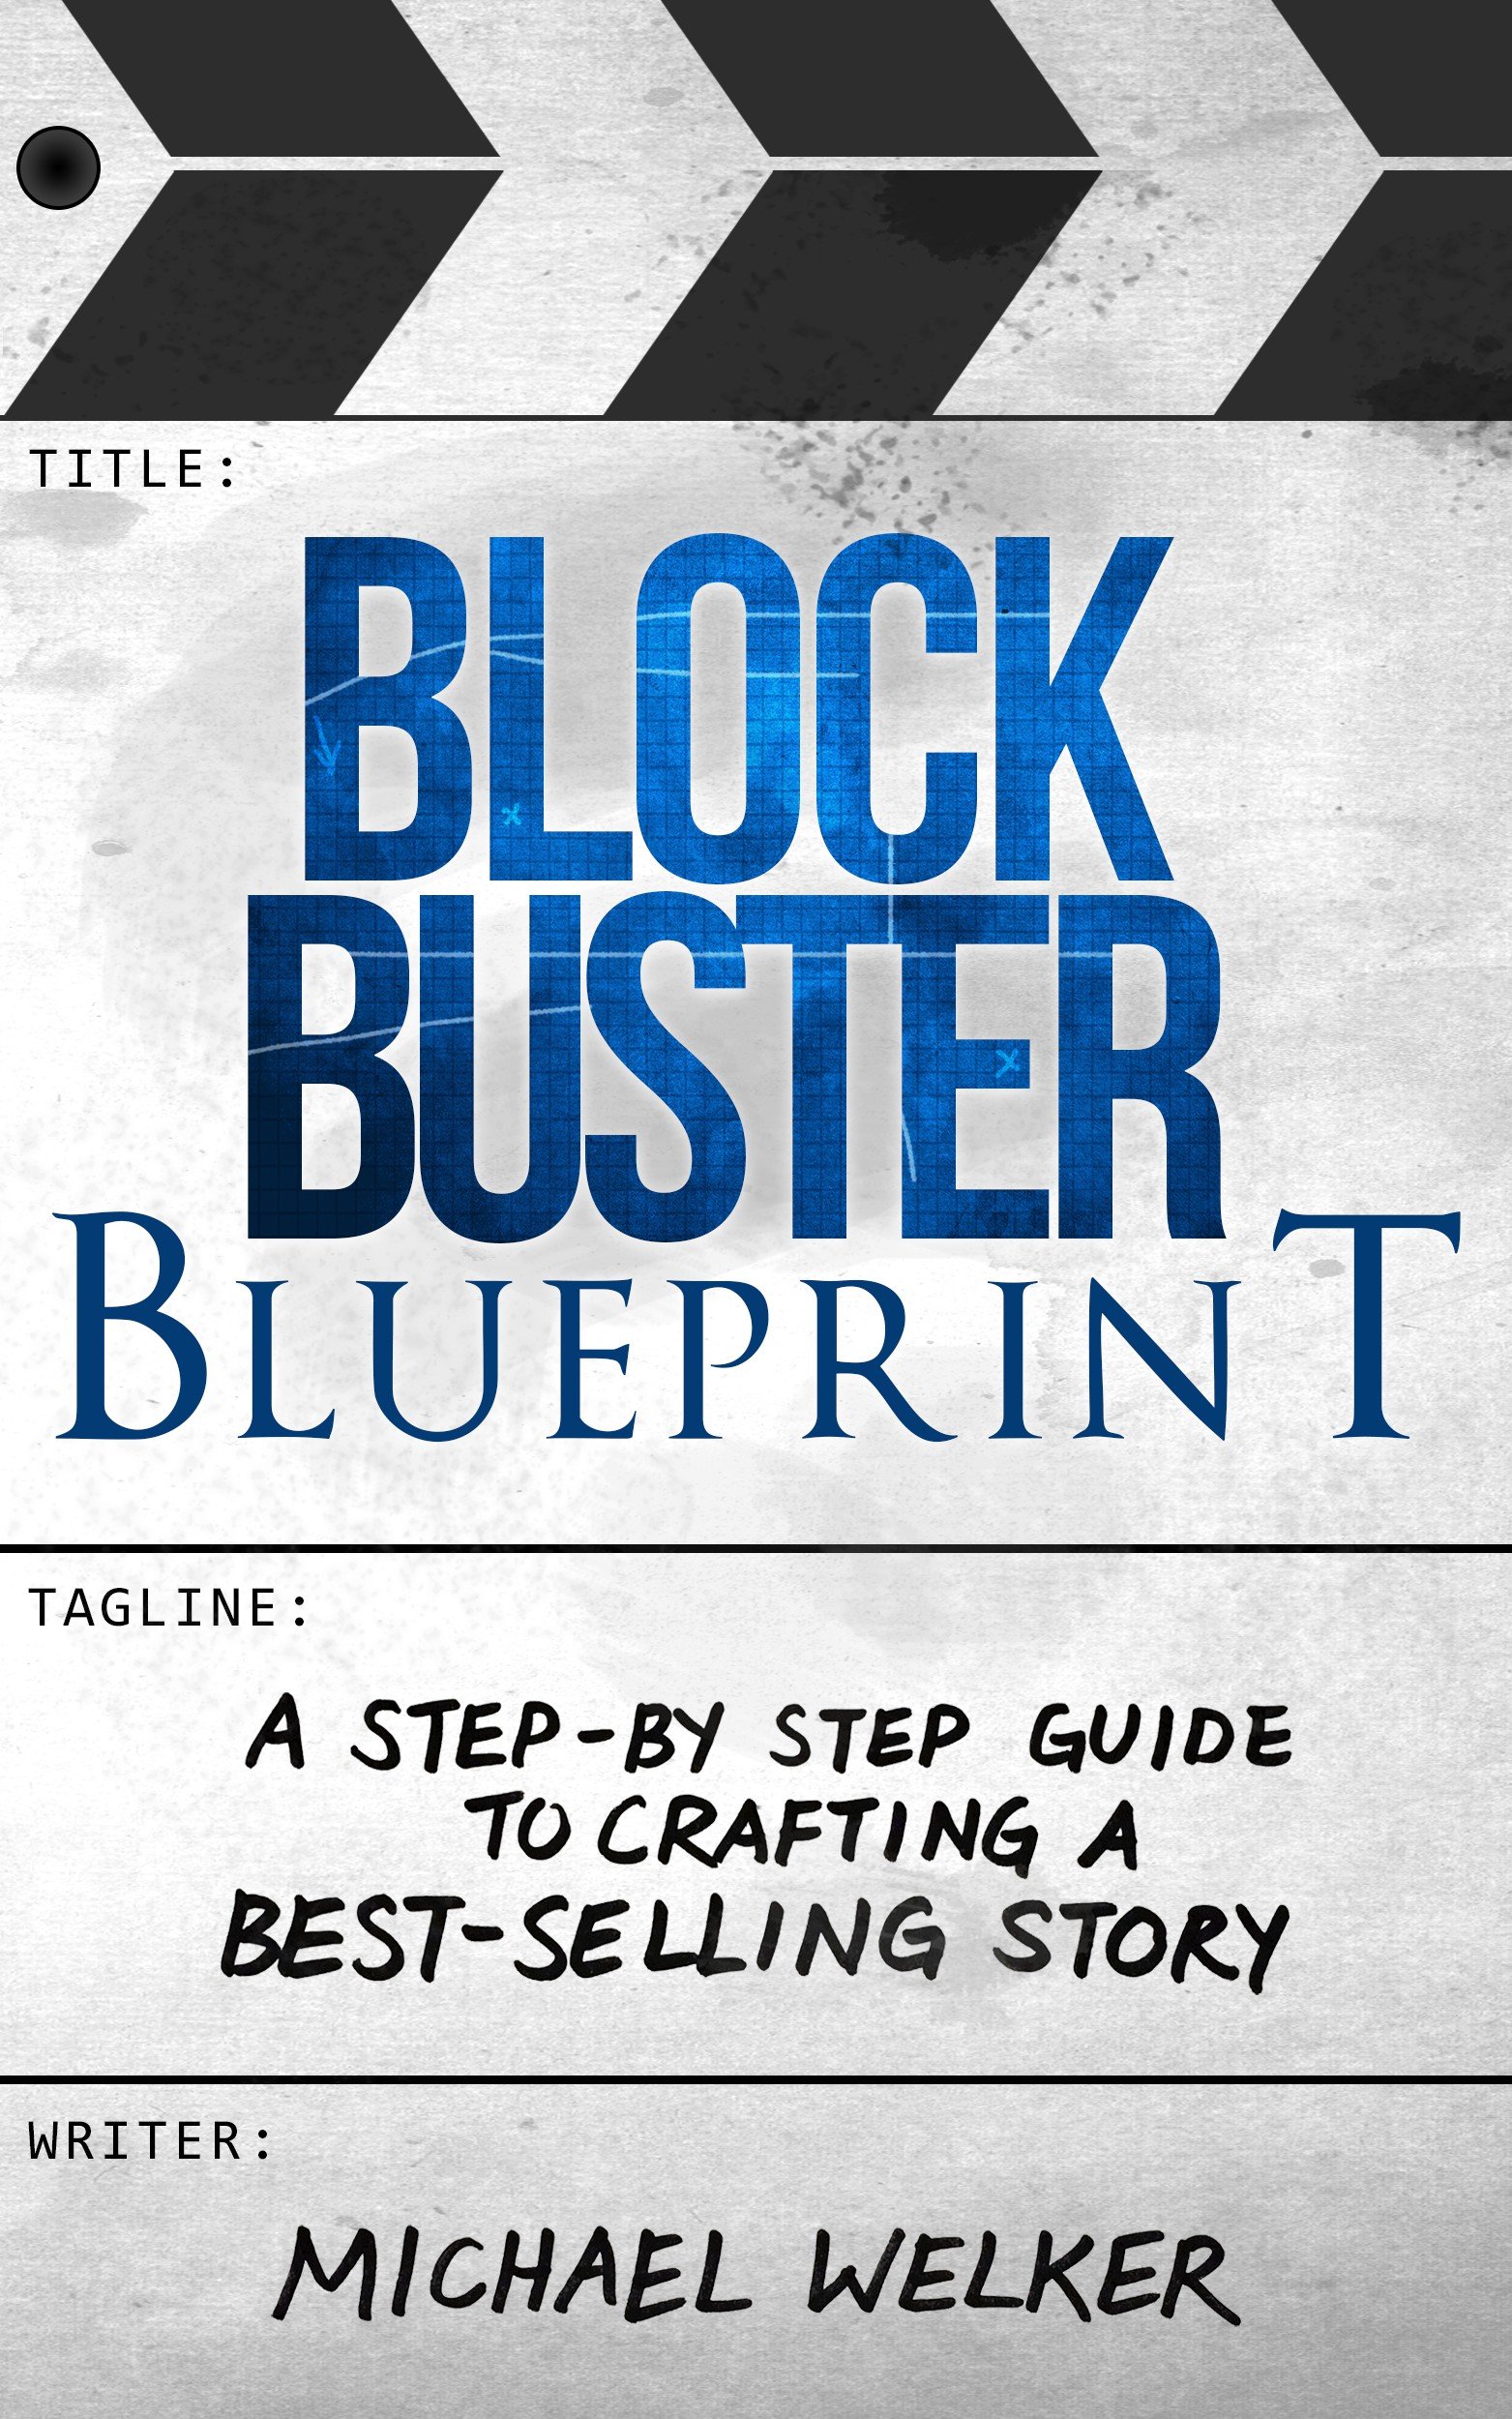 Design an eye-catching non-fiction book cover for Blockbuster Blueprint!